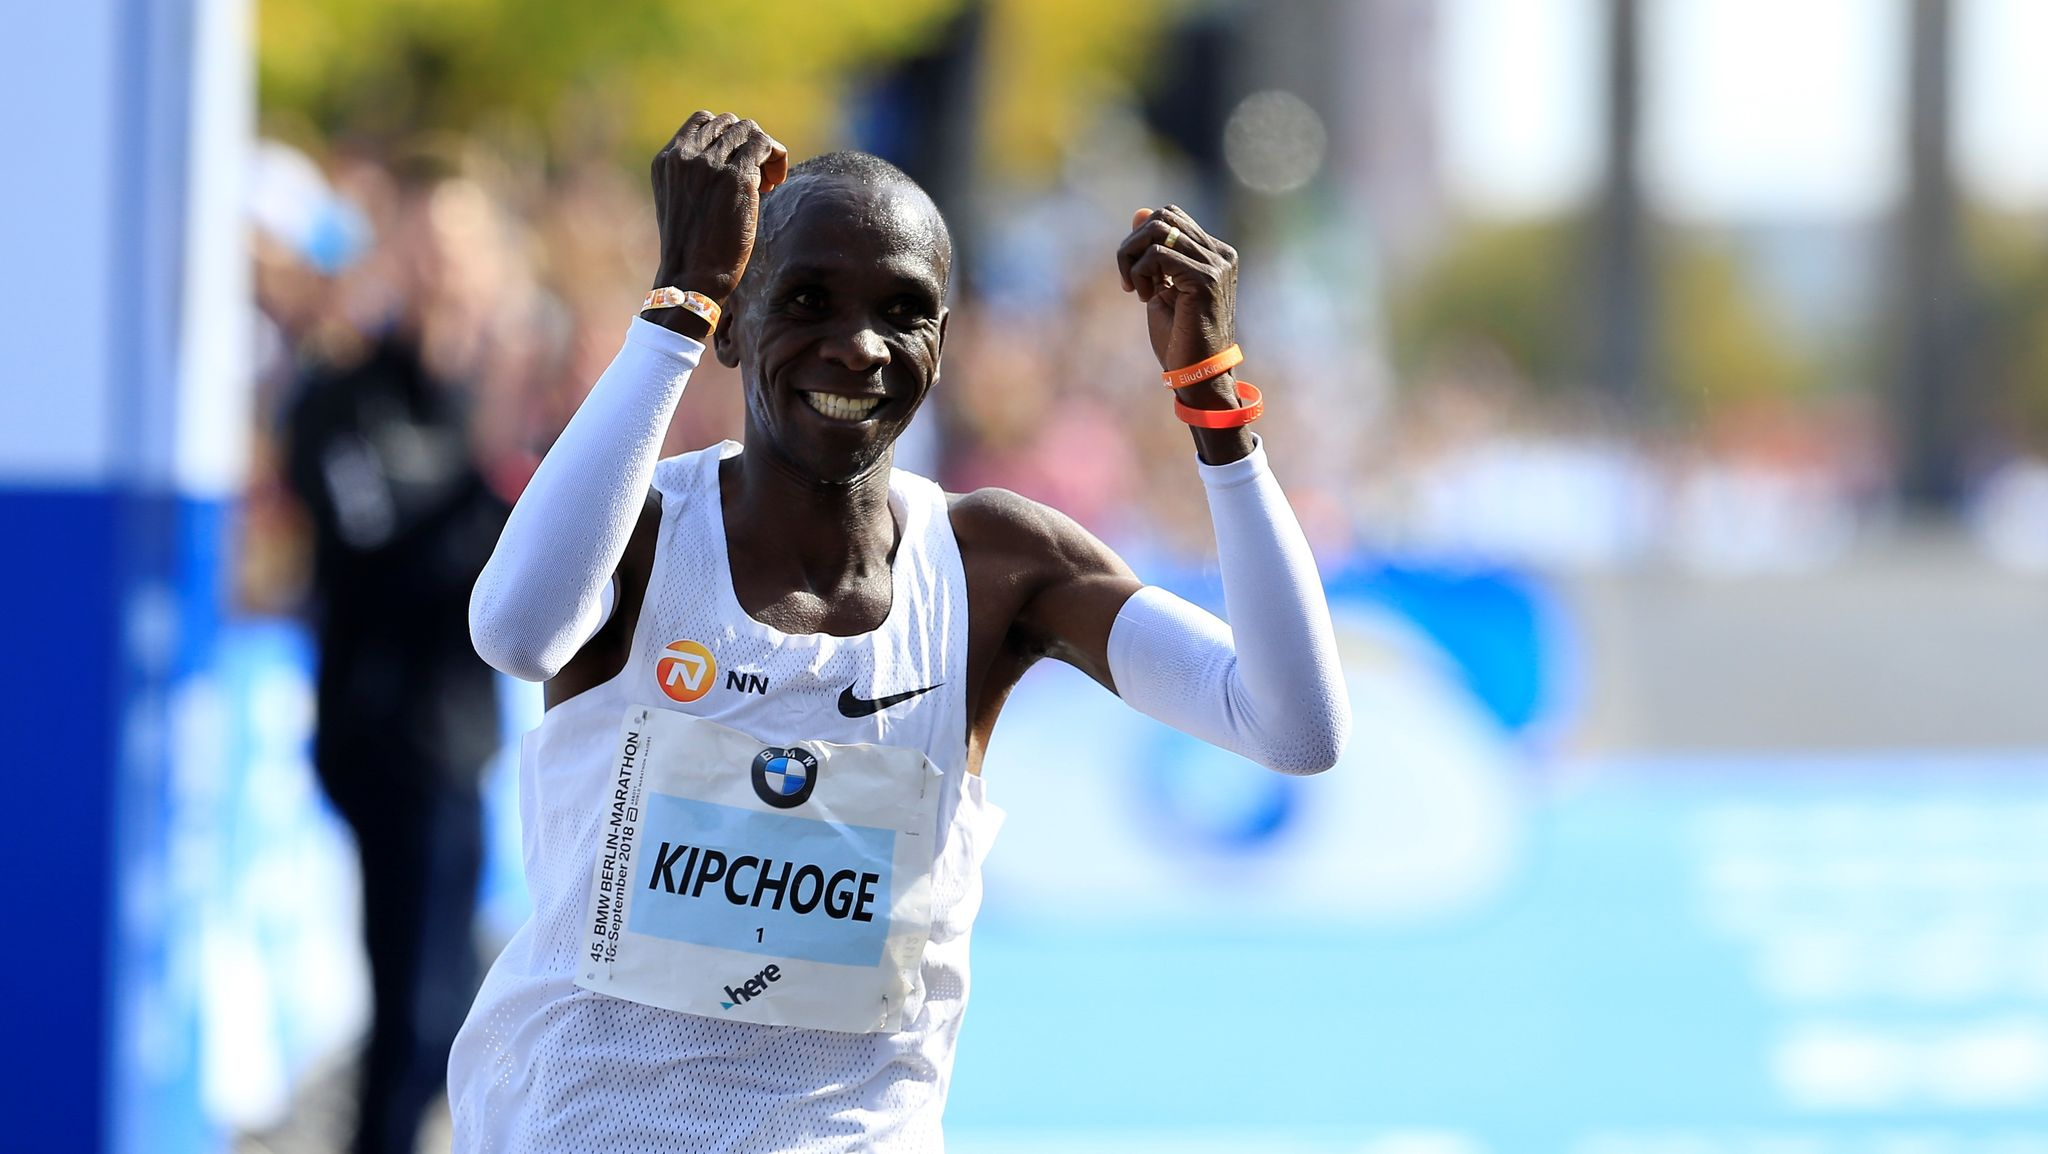 Can the world's greatest marathoner break the two-hour barrier?